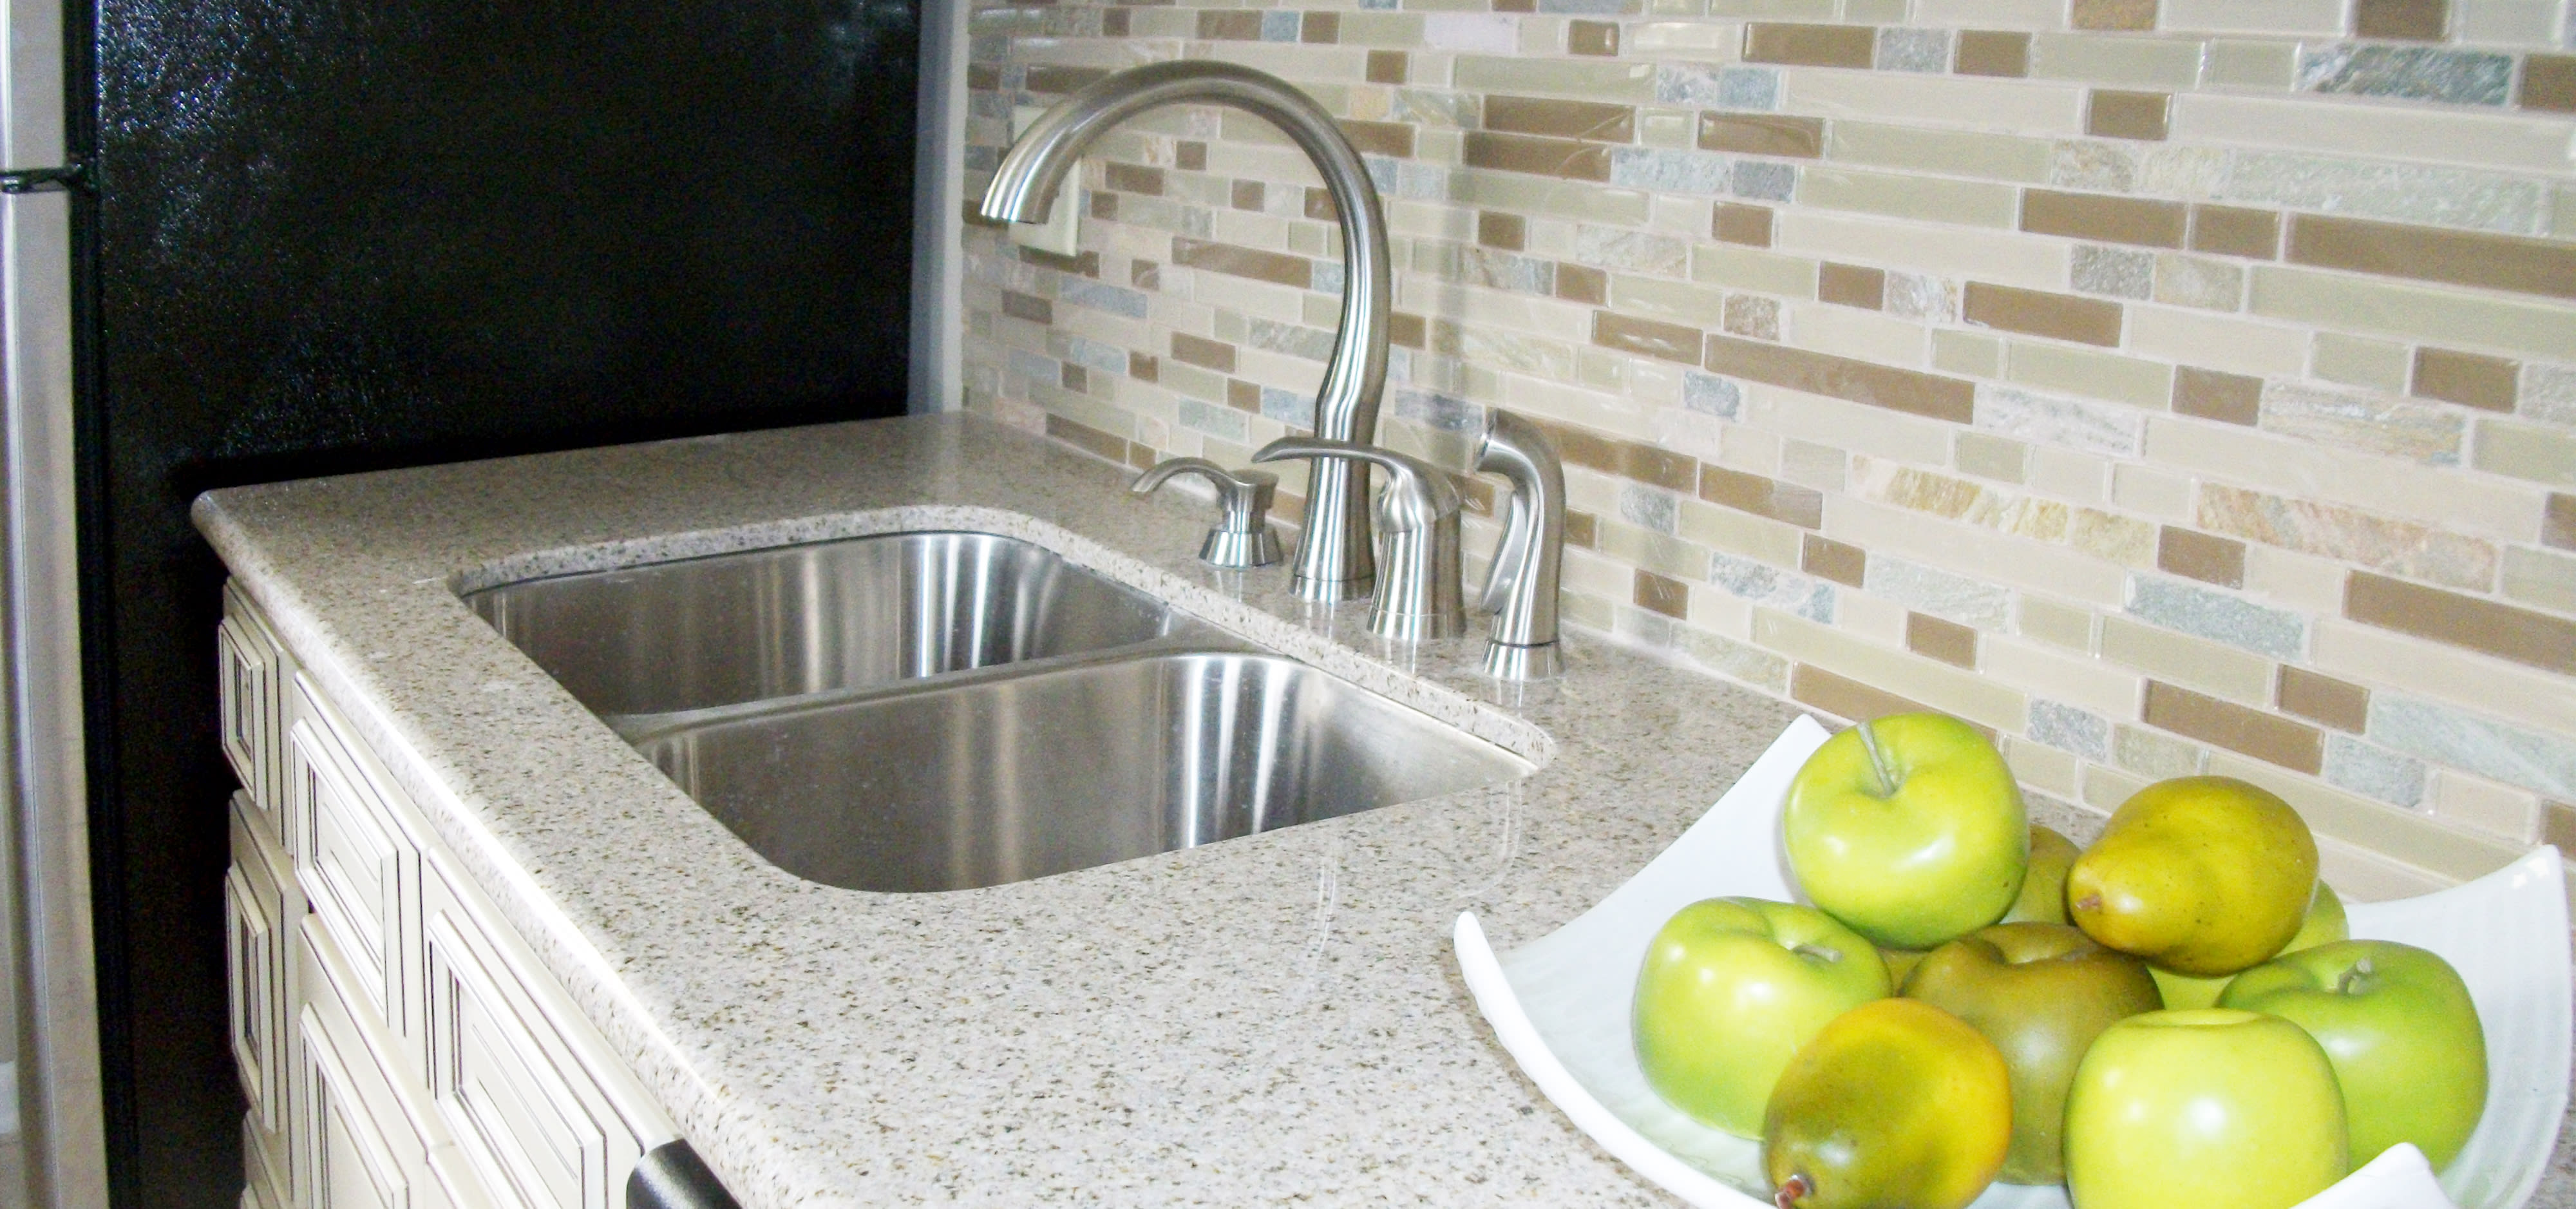 Color Theory Best Bets For Countertops And Backsplashes In A White Kitchen